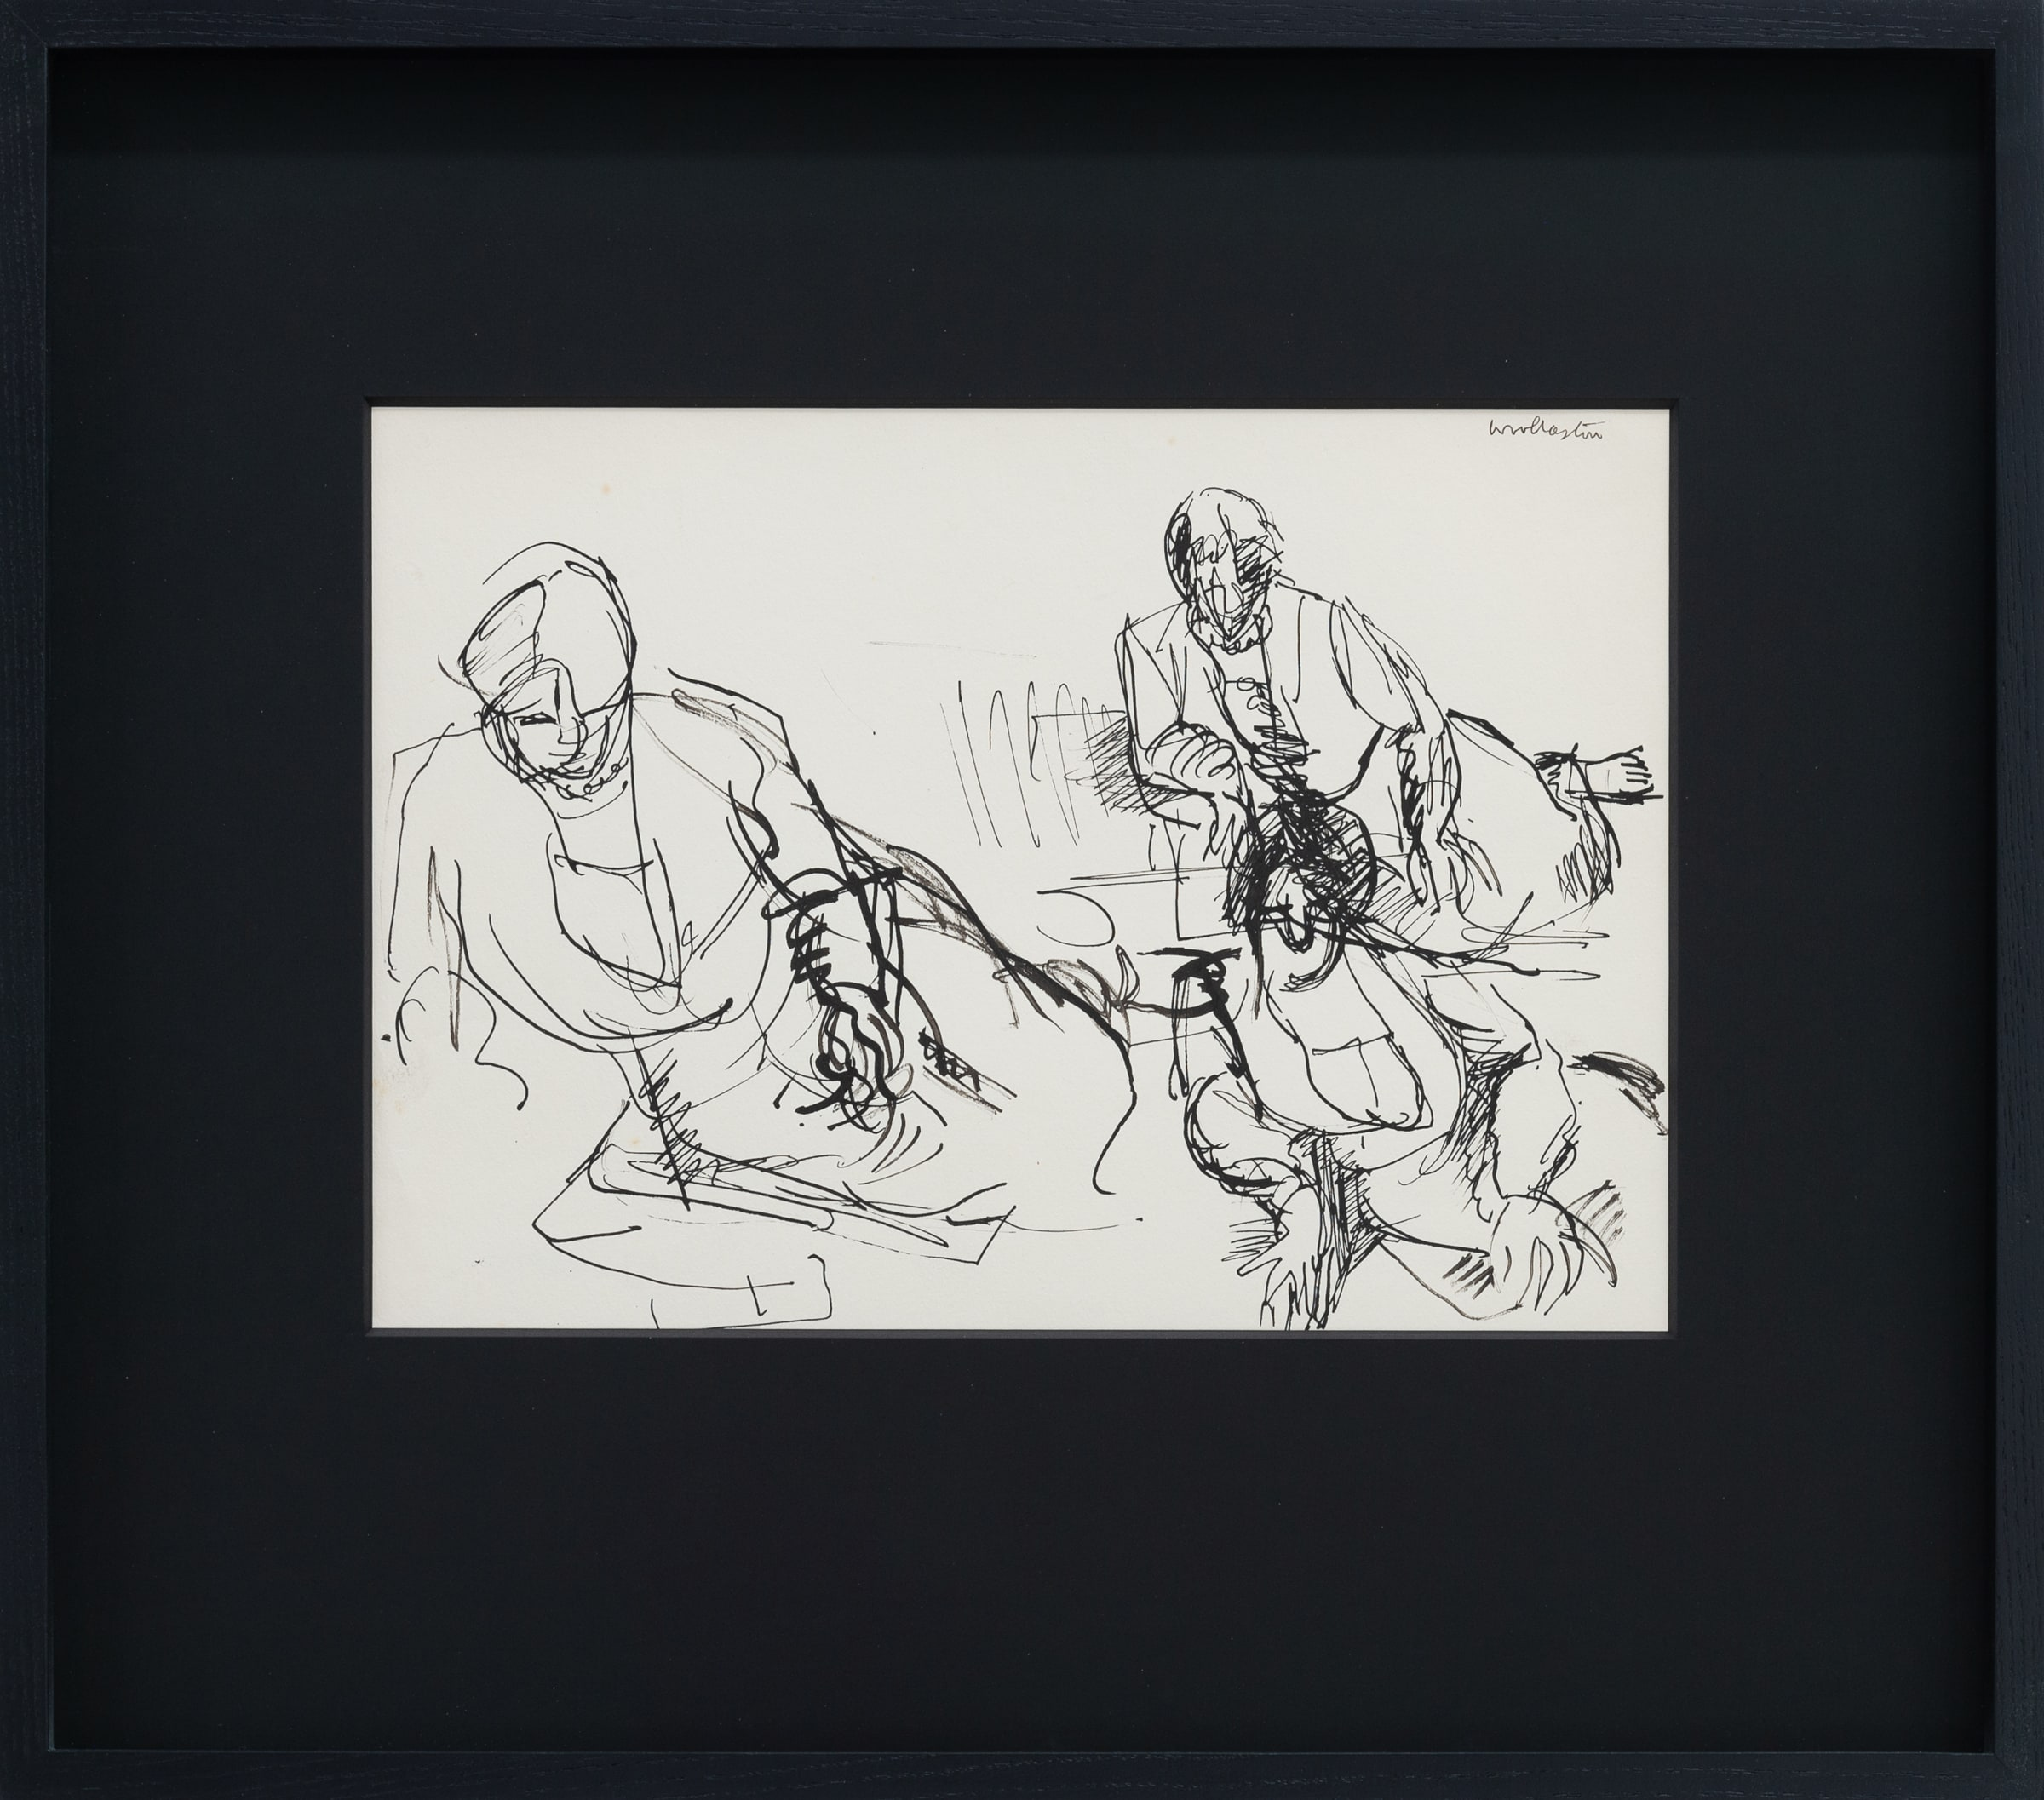 "<span class=""link fancybox-details-link""><a href=""/artists/62-mountford-tosswill-woollaston/works/7774-mountford-tosswill-woollaston-enfys-graham-three-seated-figures-on-floor-c1957/"">View Detail Page</a></span><div class=""artist""><strong>Mountford Tosswill Woollaston</strong></div> <div class=""title""><em>Enfys Graham (three seated figures on floor)</em>, c1957</div> <div class=""signed_and_dated"">signed upper right</div> <div class=""medium"">pen and ink on paper</div> <div class=""dimensions"">370mm x 270mm<br /> (unframed)<br /> 505mm x 572mm<br /> (framed)</div><div class=""copyright_line"">Copyright The Artist</div>"